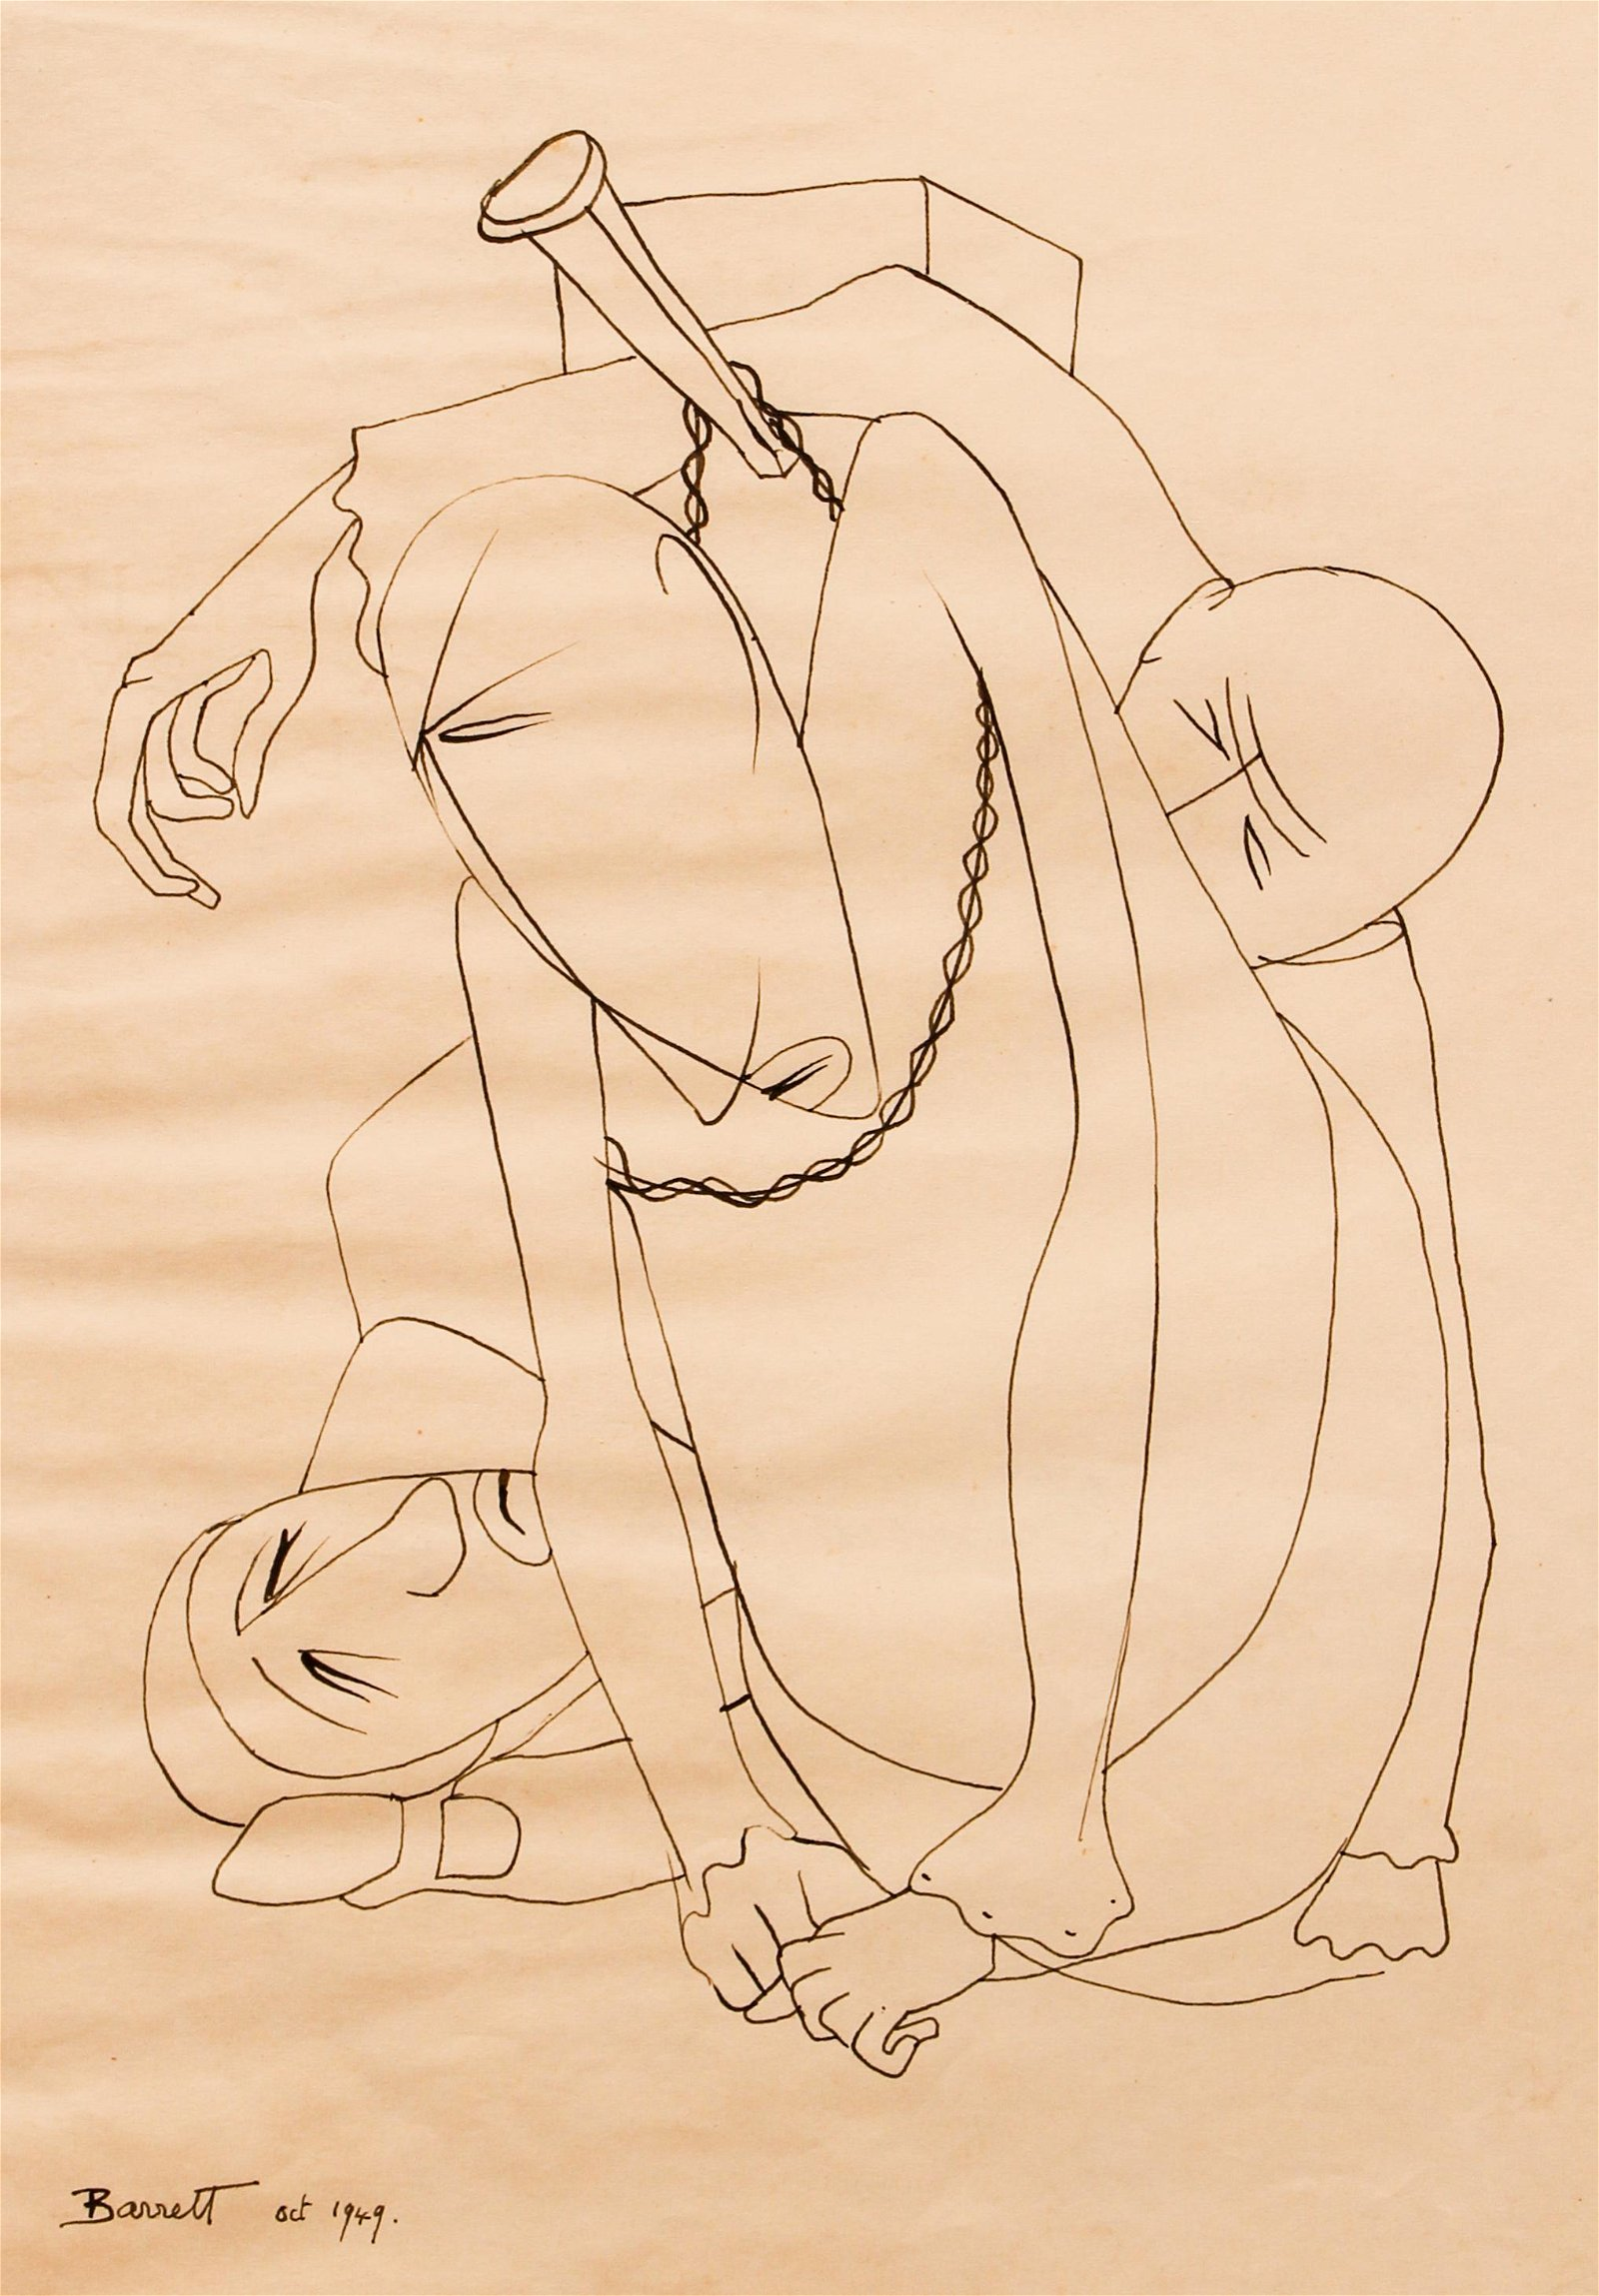 Barrett drawing Chained Figures, 1949